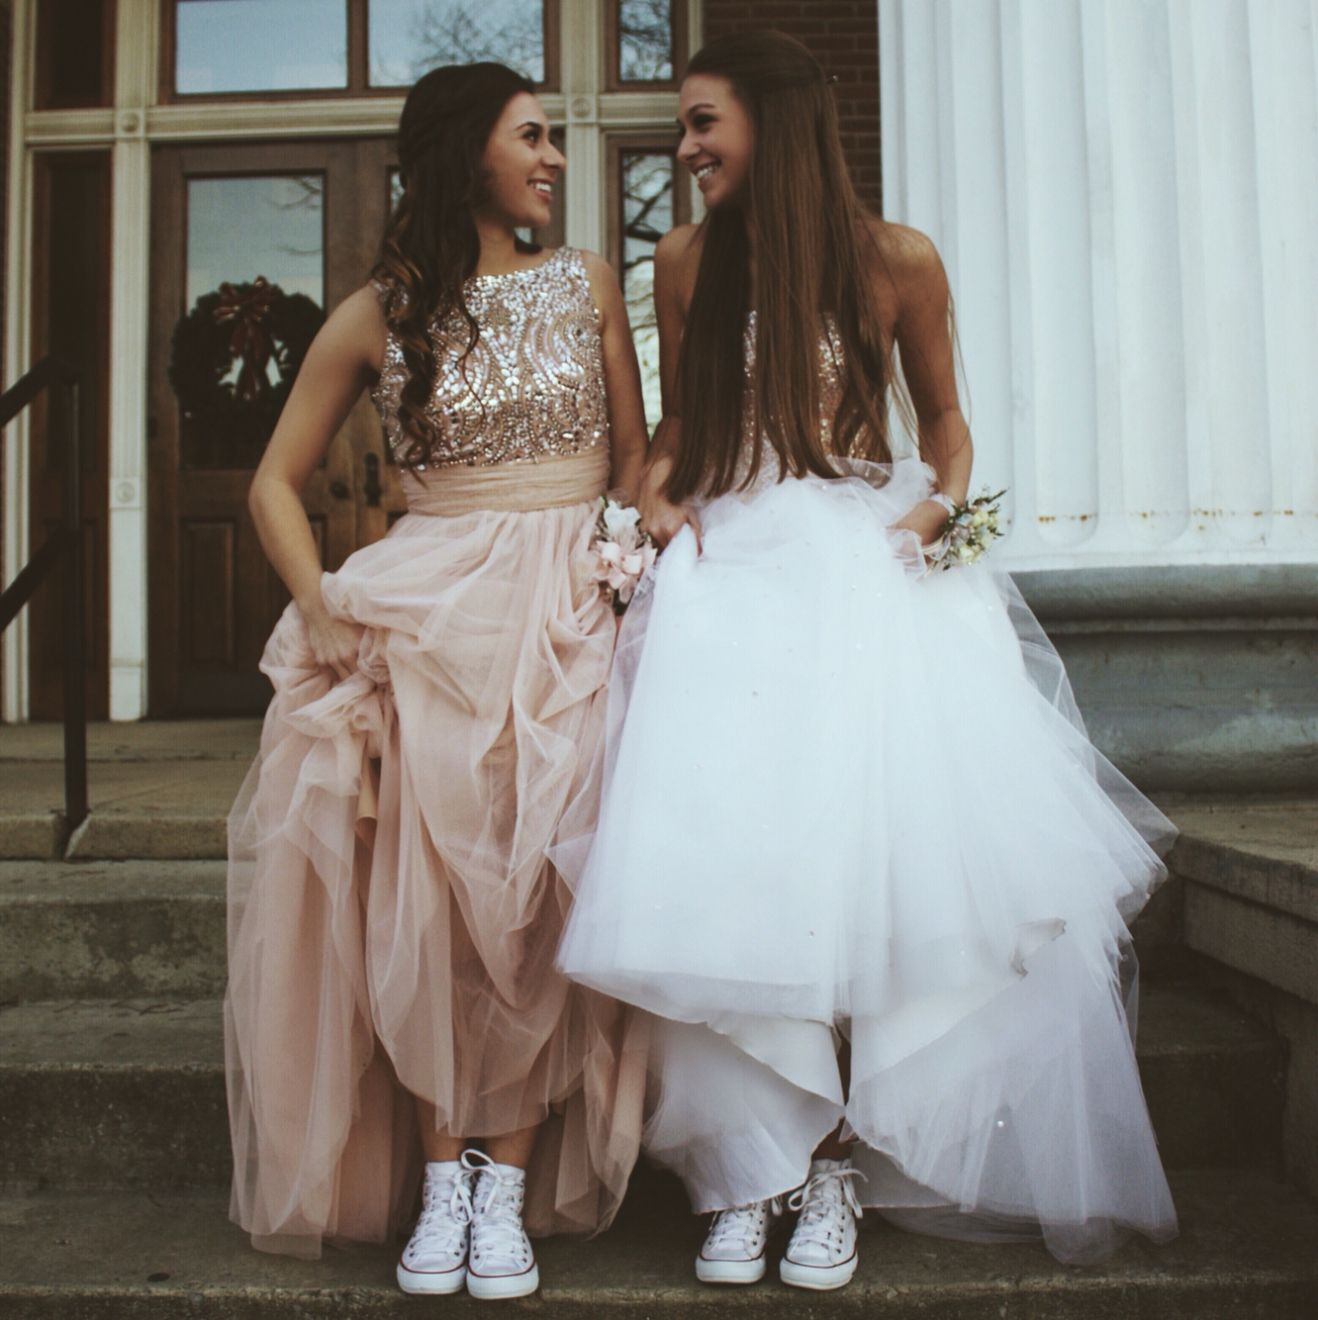 Dress Prom Dress Evening Dress Tulle Dress Dress Prom Sequins Dress Custom Dress Bodice Dress Prom Poses Prom Pictures Dresses [ 1320 x 1318 Pixel ]